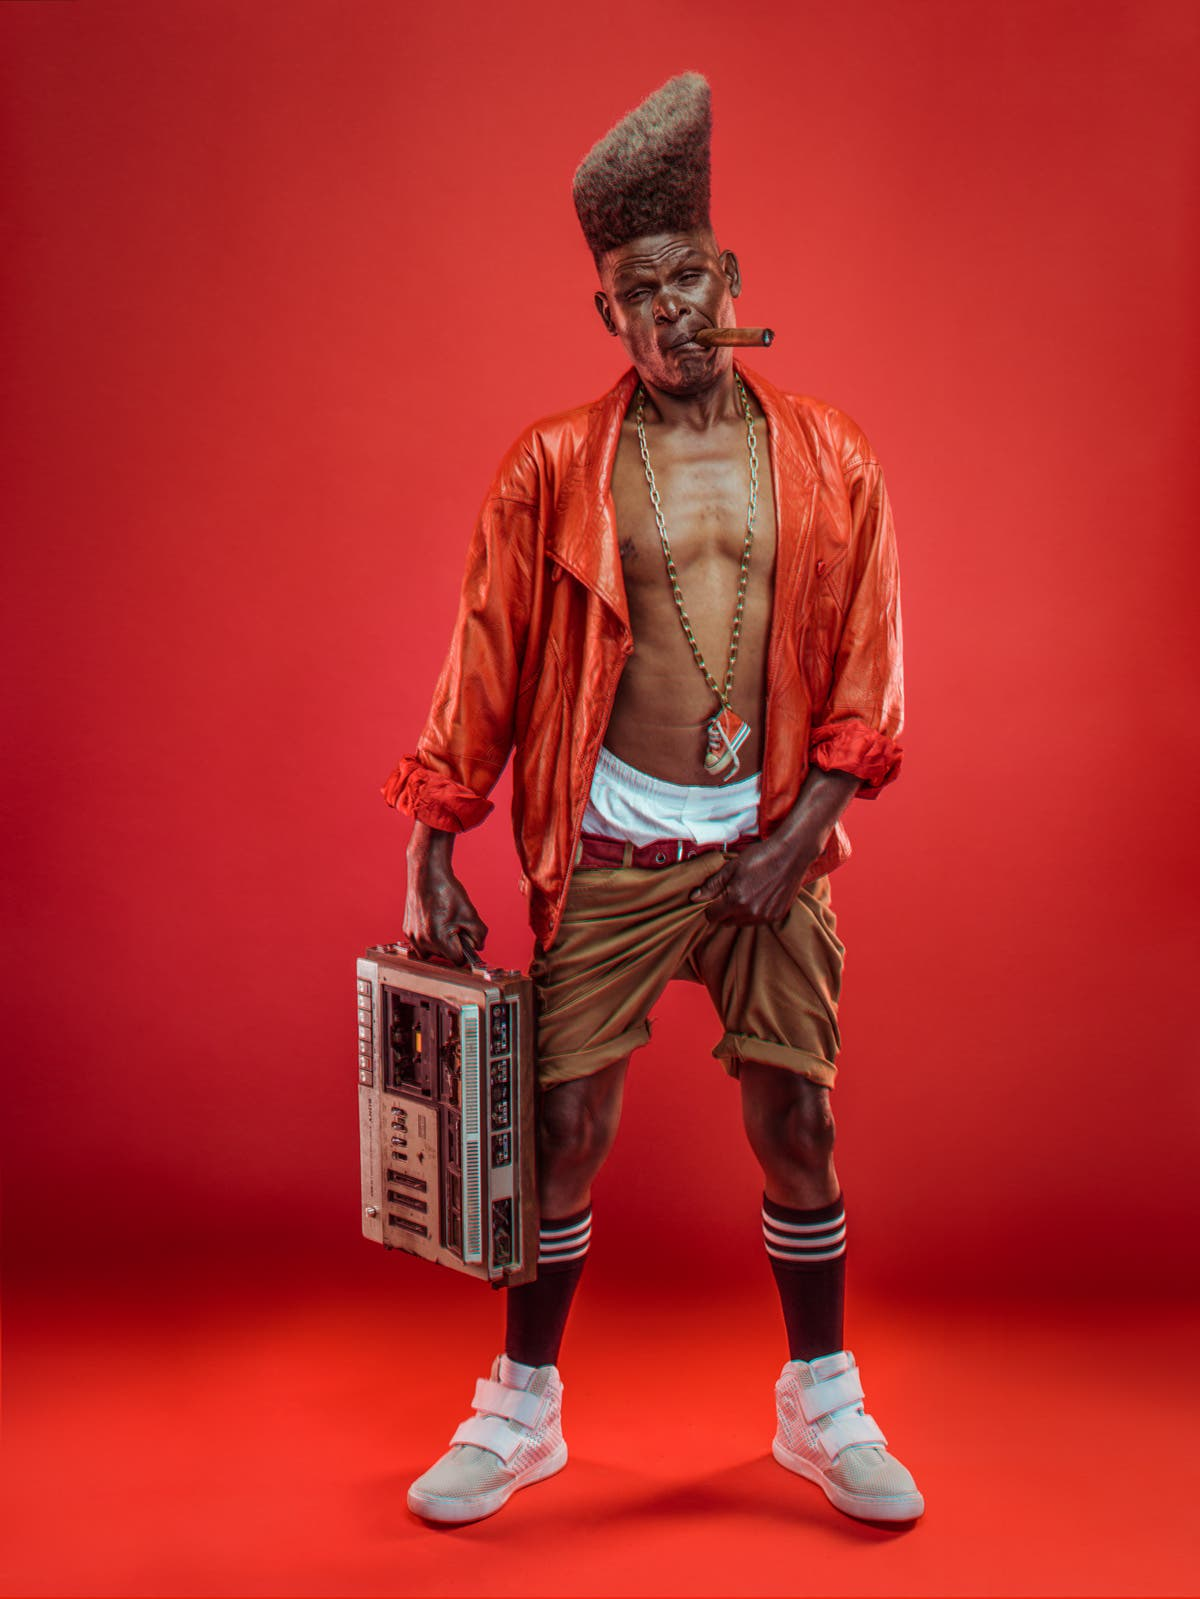 Osborne Macharia's Kabangu Series is An Ode to Old School Hip-Hop in Nairobi